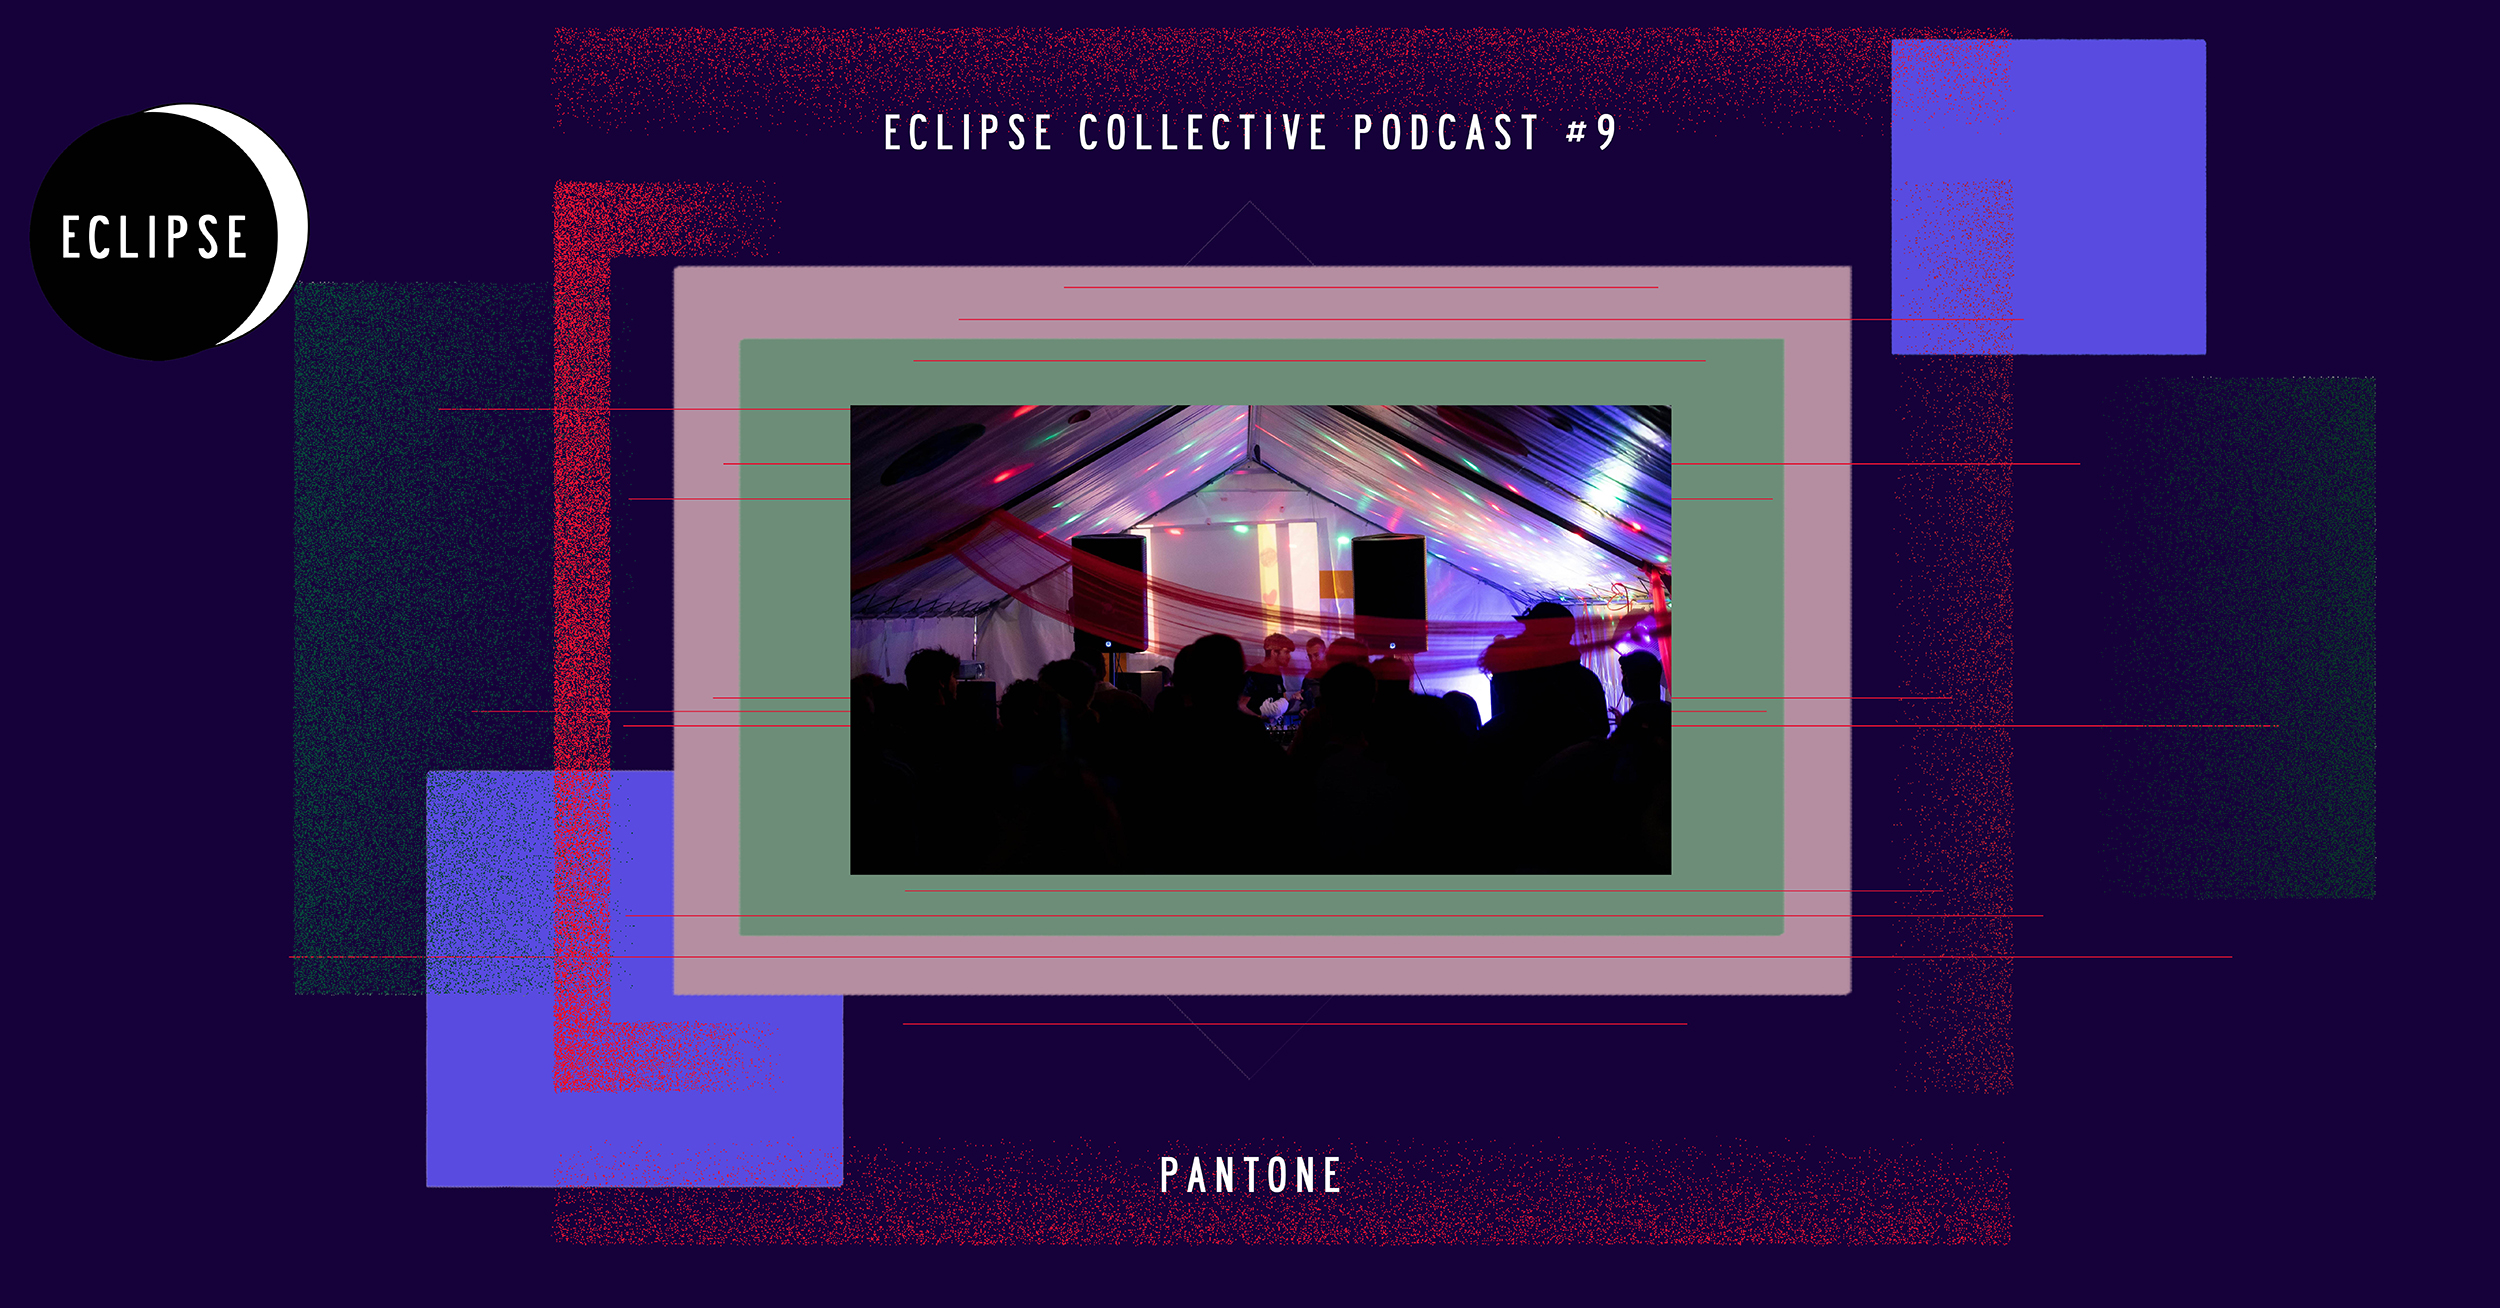 Eclipse Collective Podcast #9 - Pantone